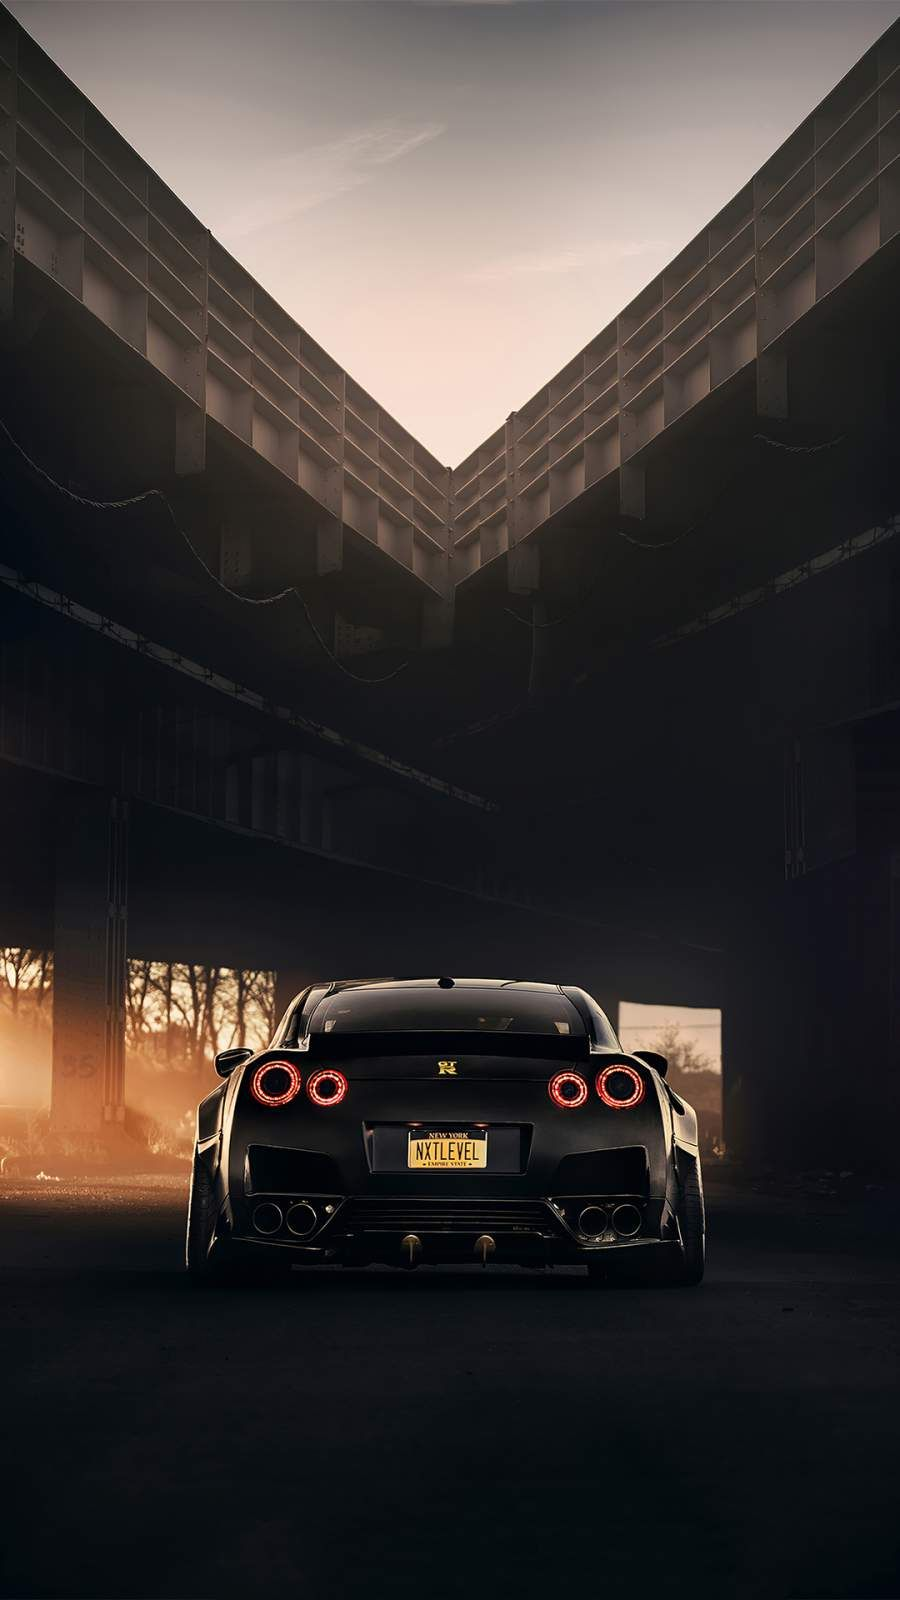 Choose from the iphone's default wallpaper selection or create your own vivid lock or home screen displays w. Nissan Gtr Black Iphone Wallpaper Nissan Gtr Wallpapers Nissan Gtr Black Nissan Gtr